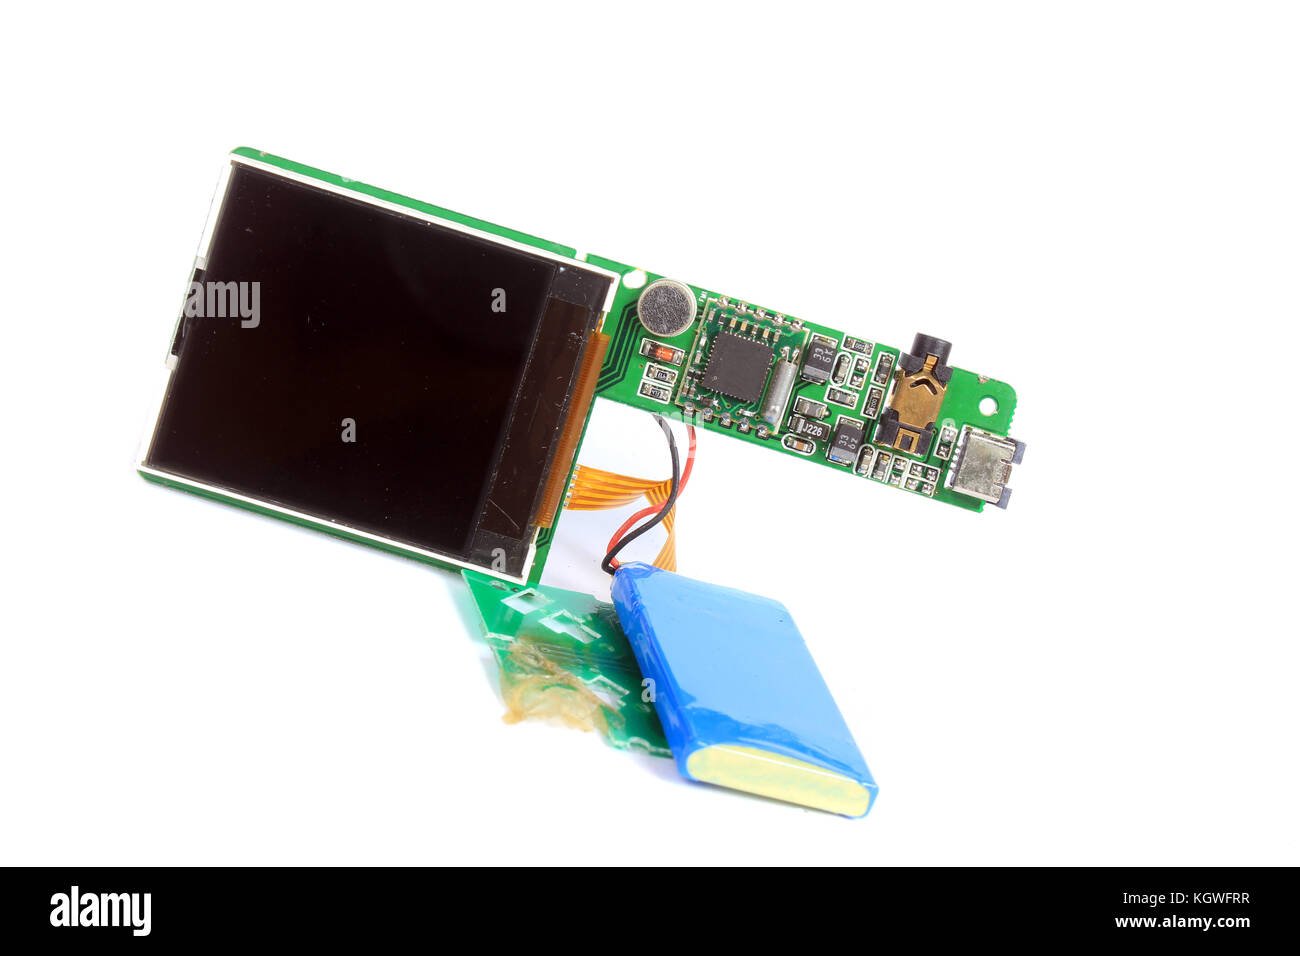 An old MP3 player stripped down showing its components like circuit board, battery and lcd screen. - Stock Image